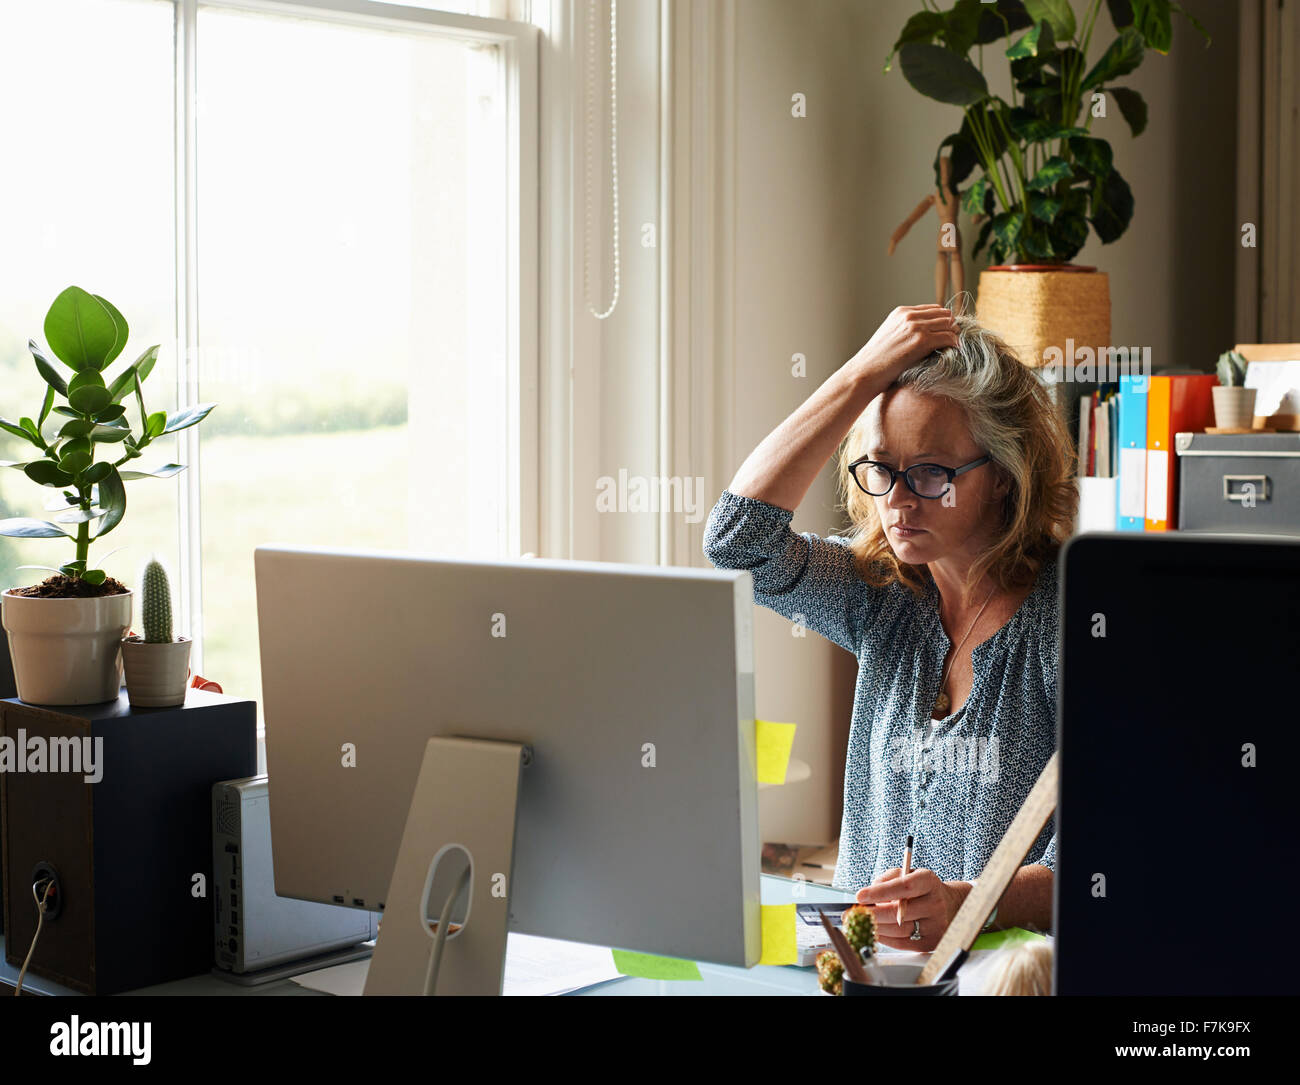 Stressed woman with hand in hair holding credit card at computer in home office - Stock Image